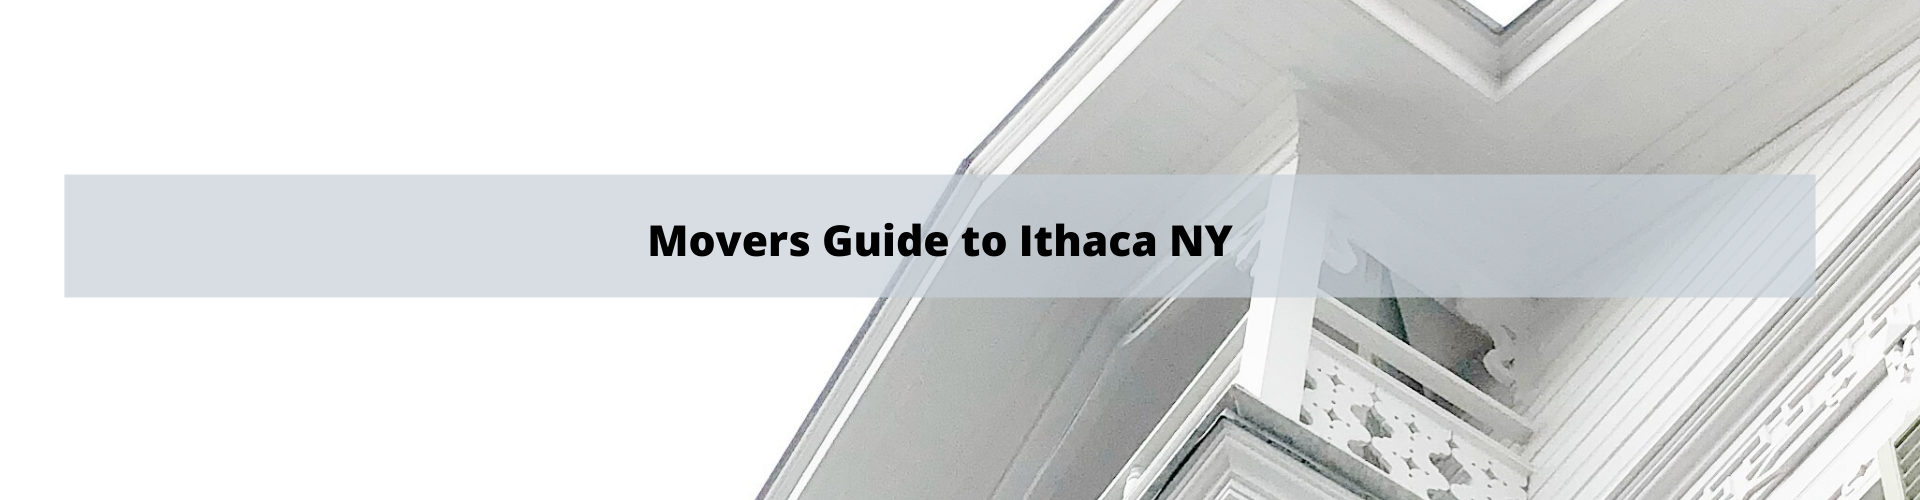 Movers Guide to Ithaca NY